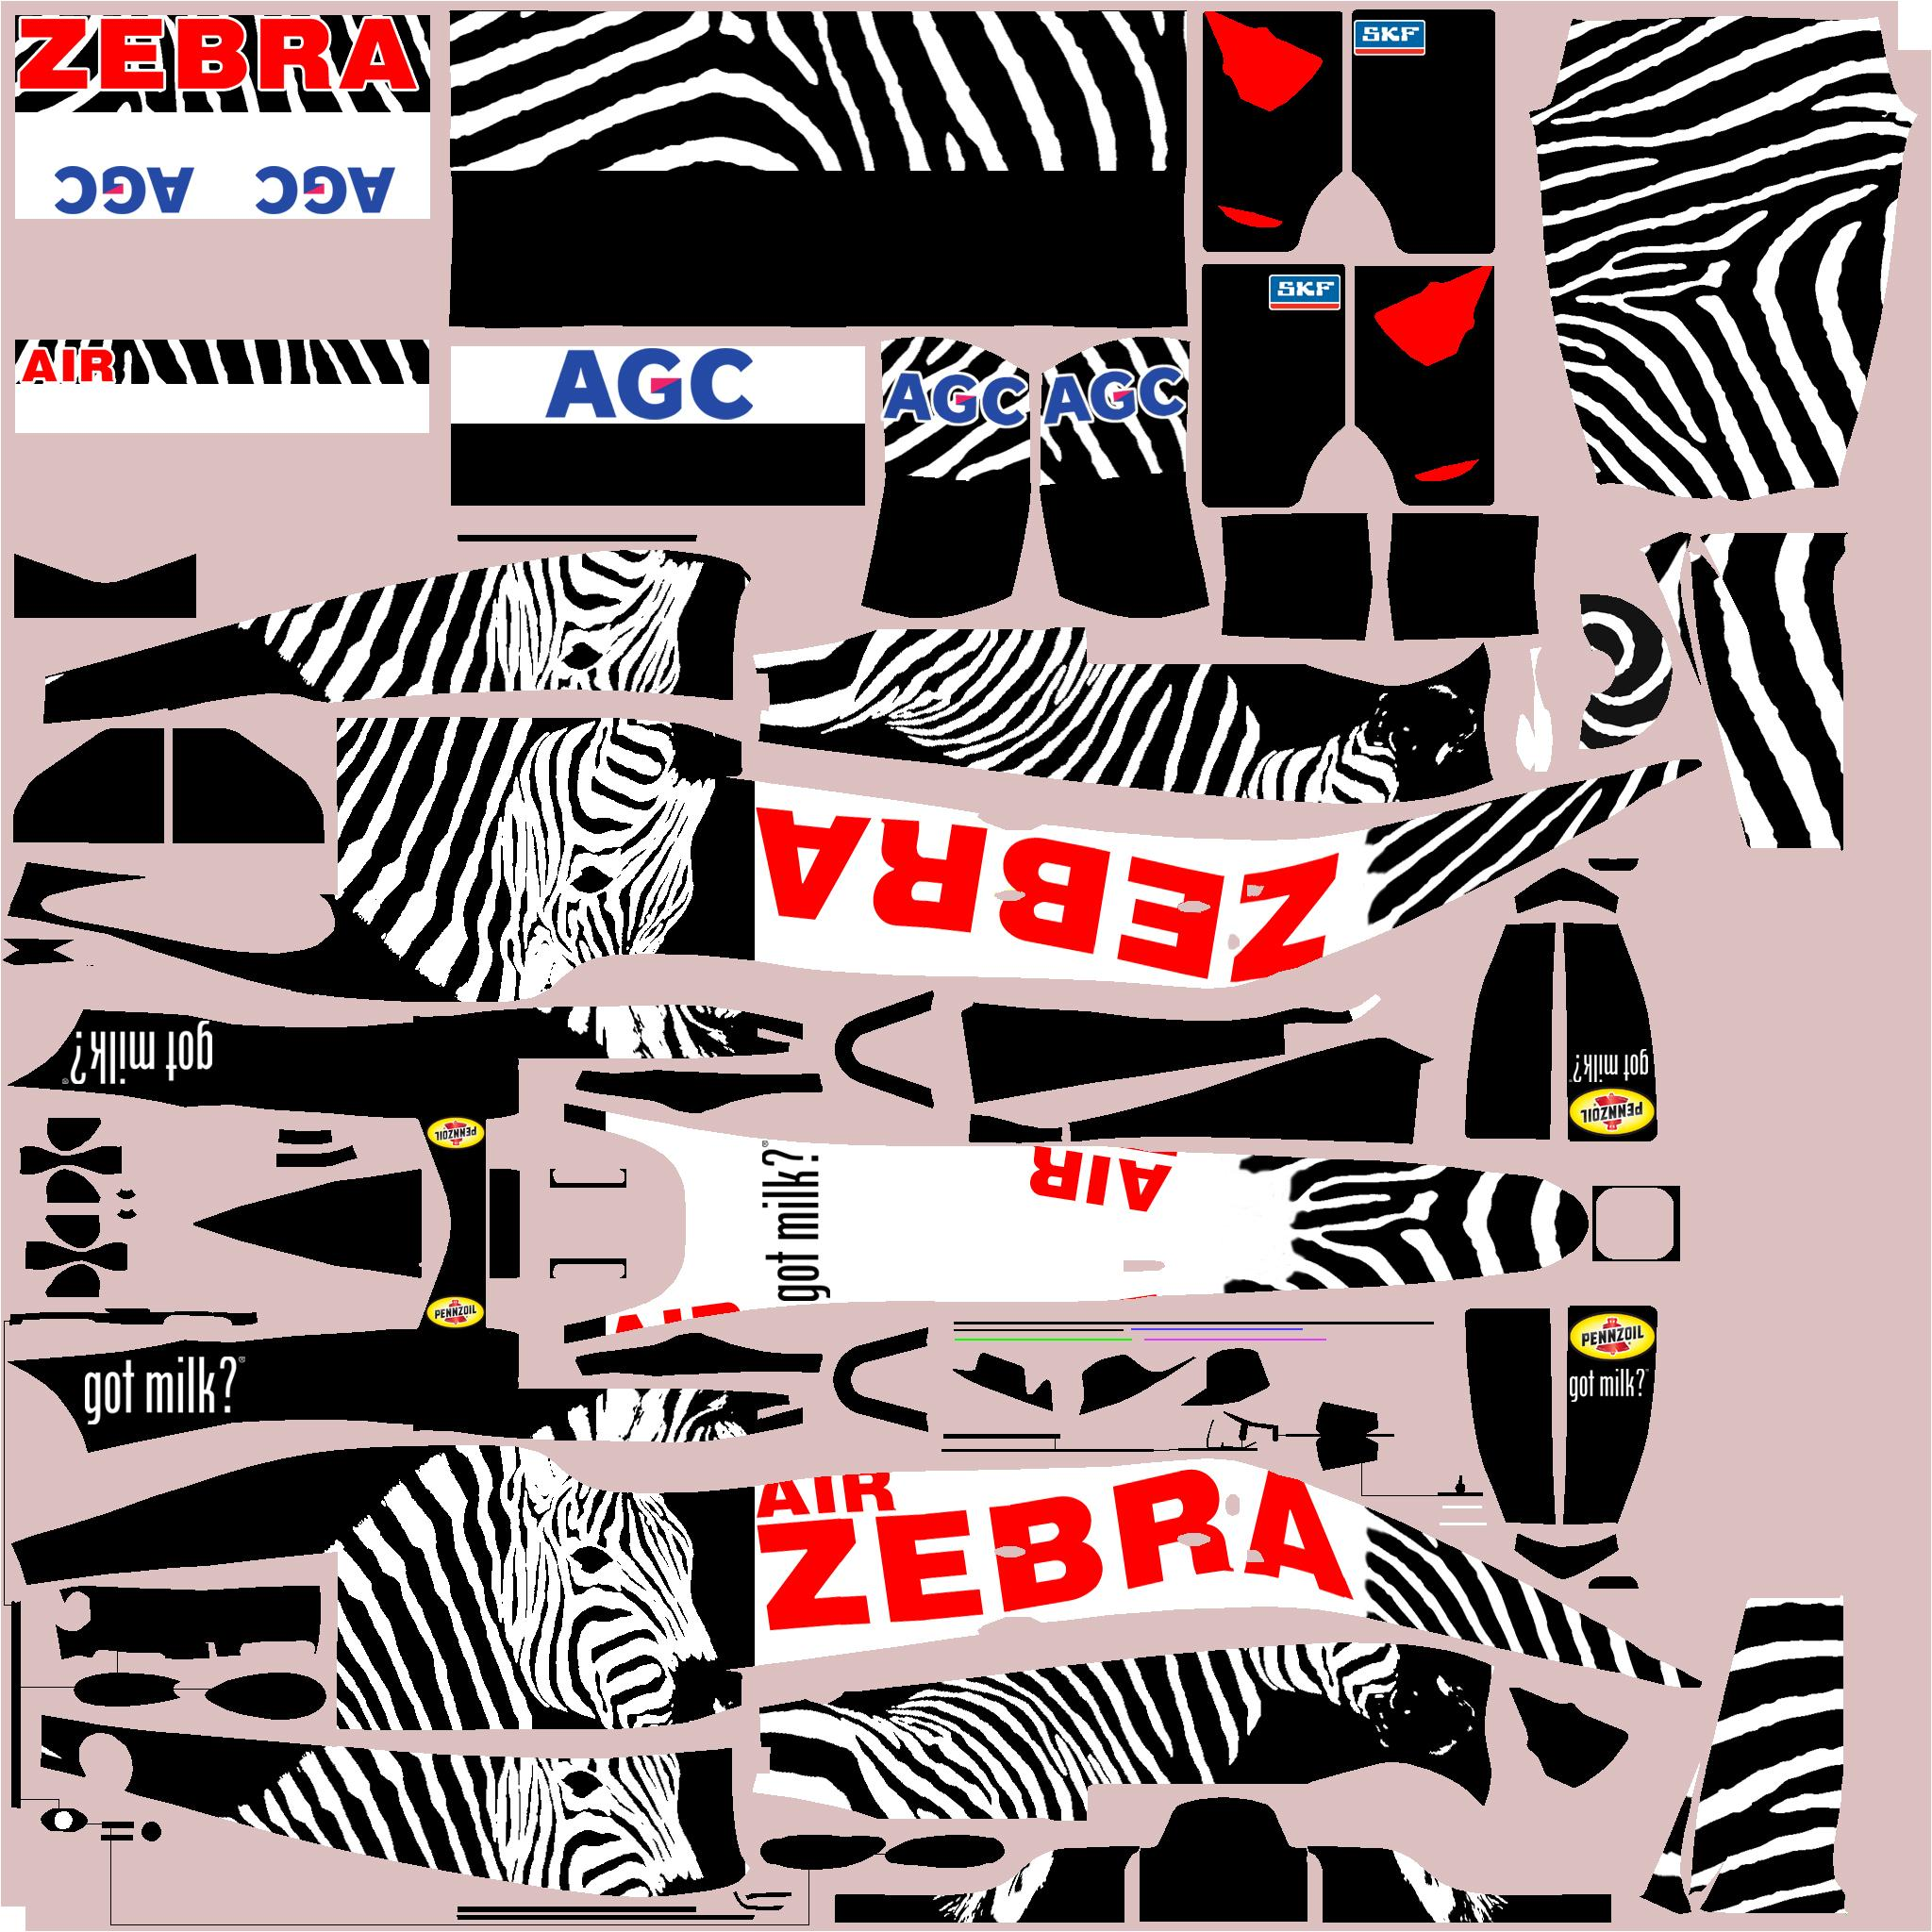 Preview of Dallara F3 Zebra Air by Clyde Coman